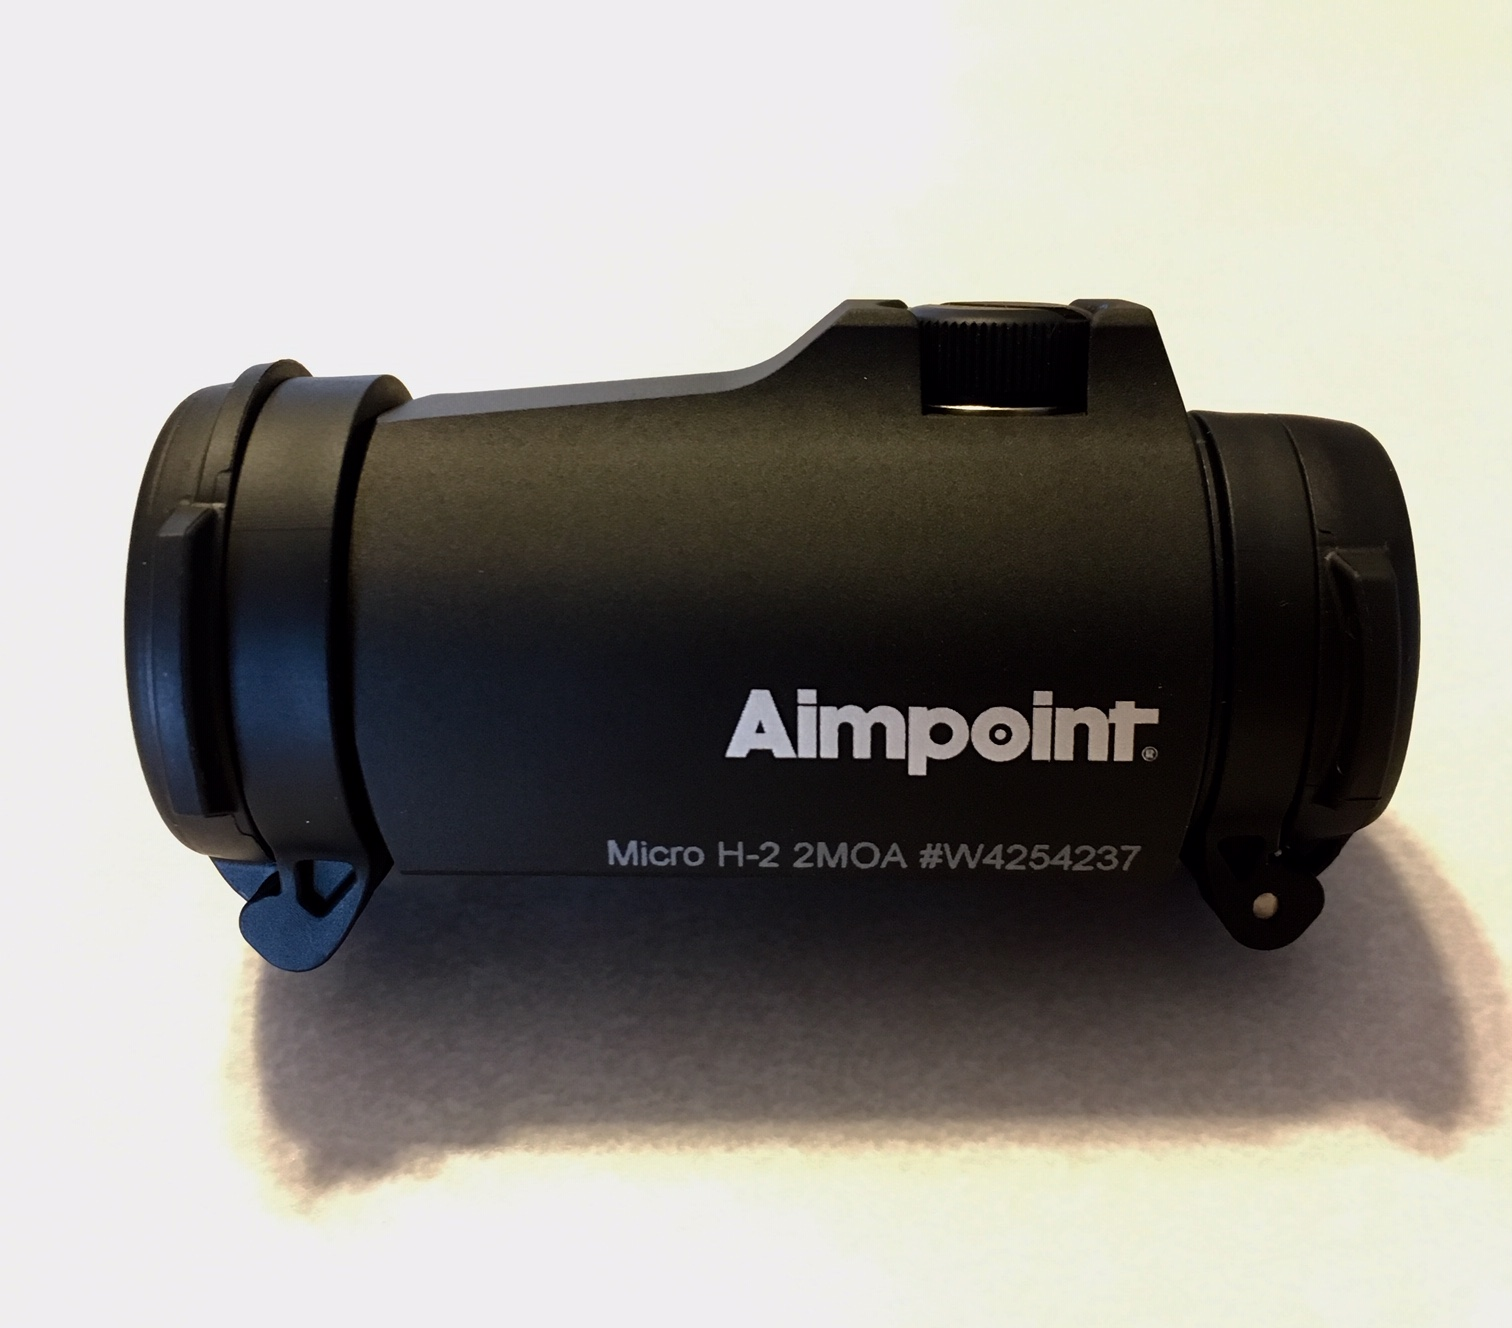 WTS: Aimpoint Micro H-2, 2 MOA, Full factory package without mount (Model 200186) New-ap2.jpg